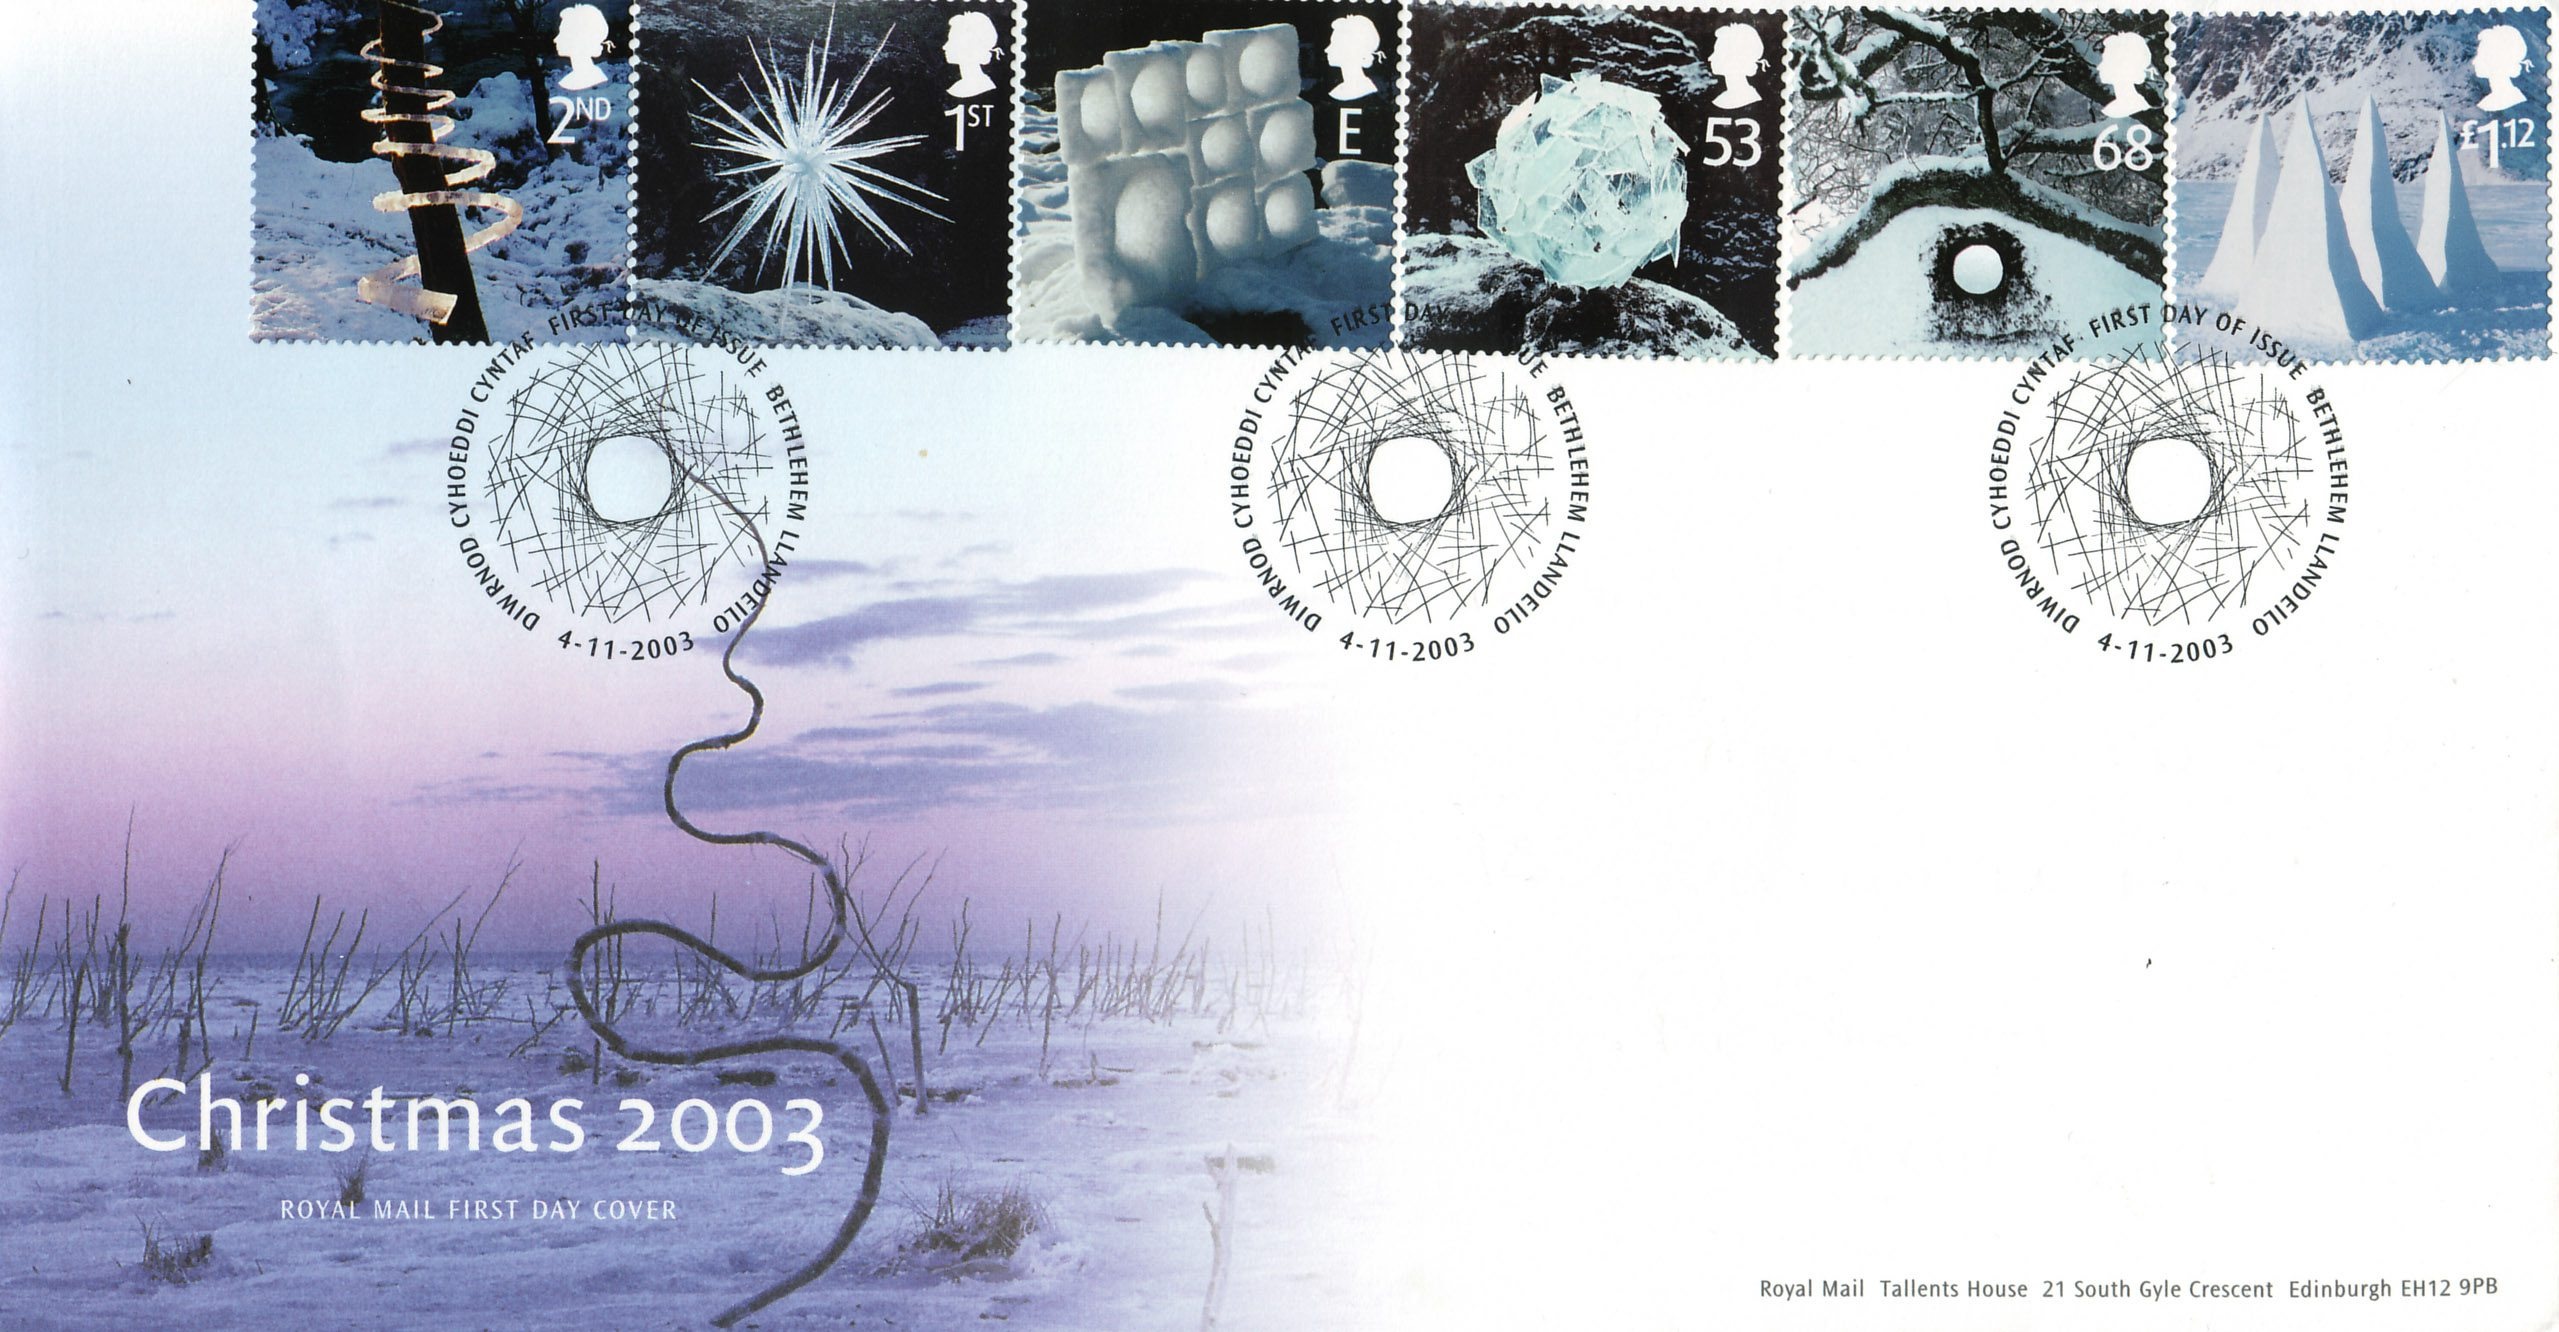 A first day Cover depicting the six sculptures Andy Goldsworthy produced for Royal Mail made from ice or snow.